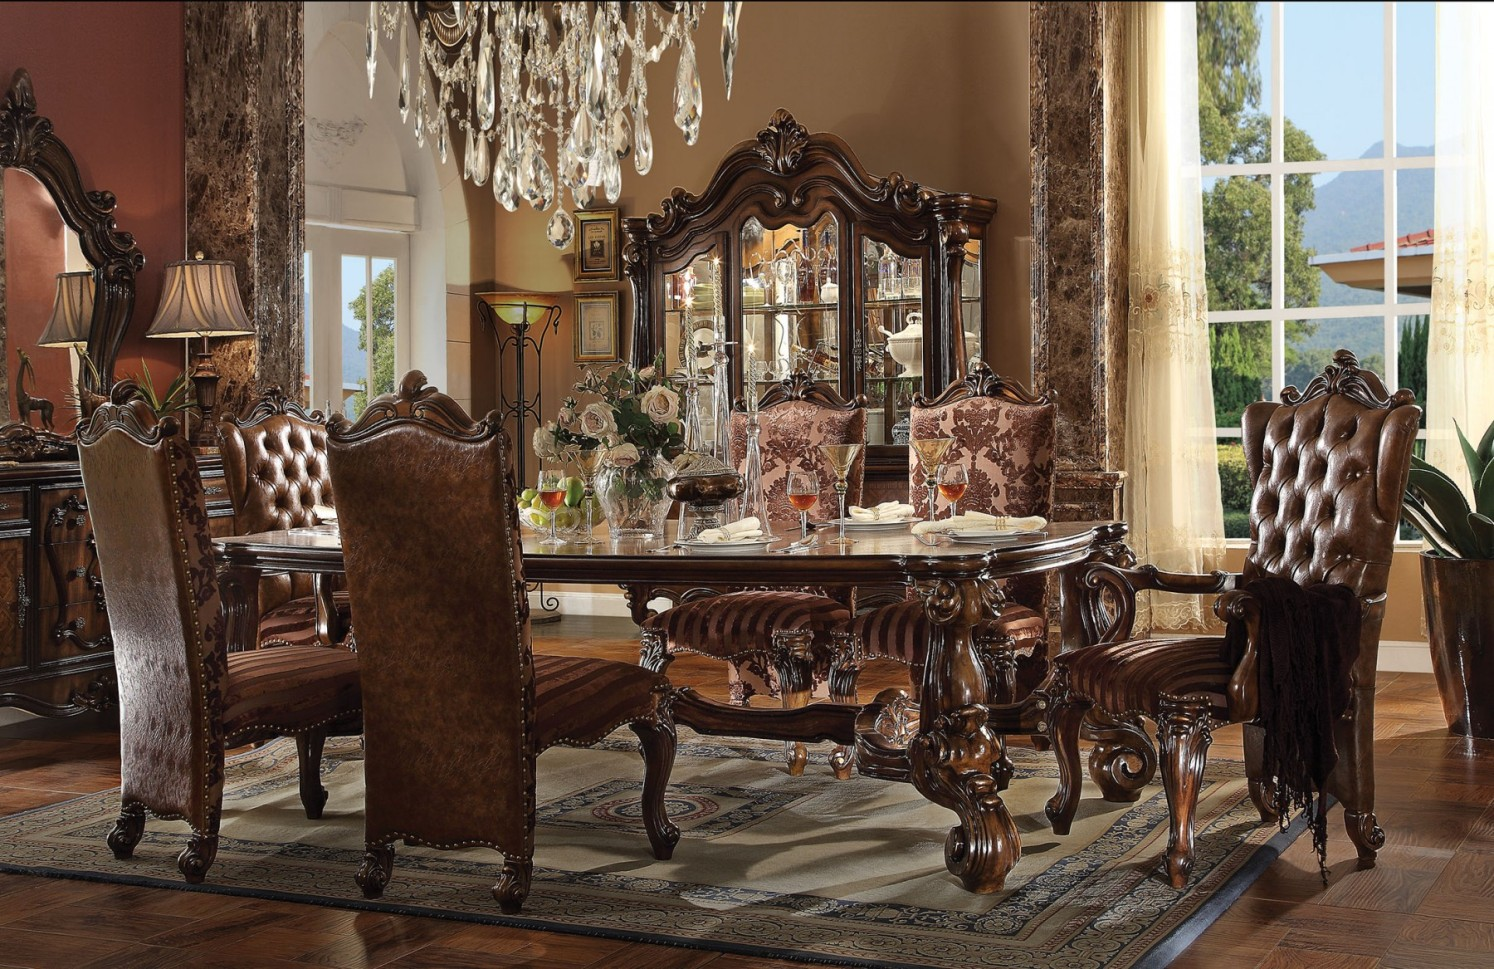 Formal dining room sets how elegance is made possible for Formal dining room furniture sets